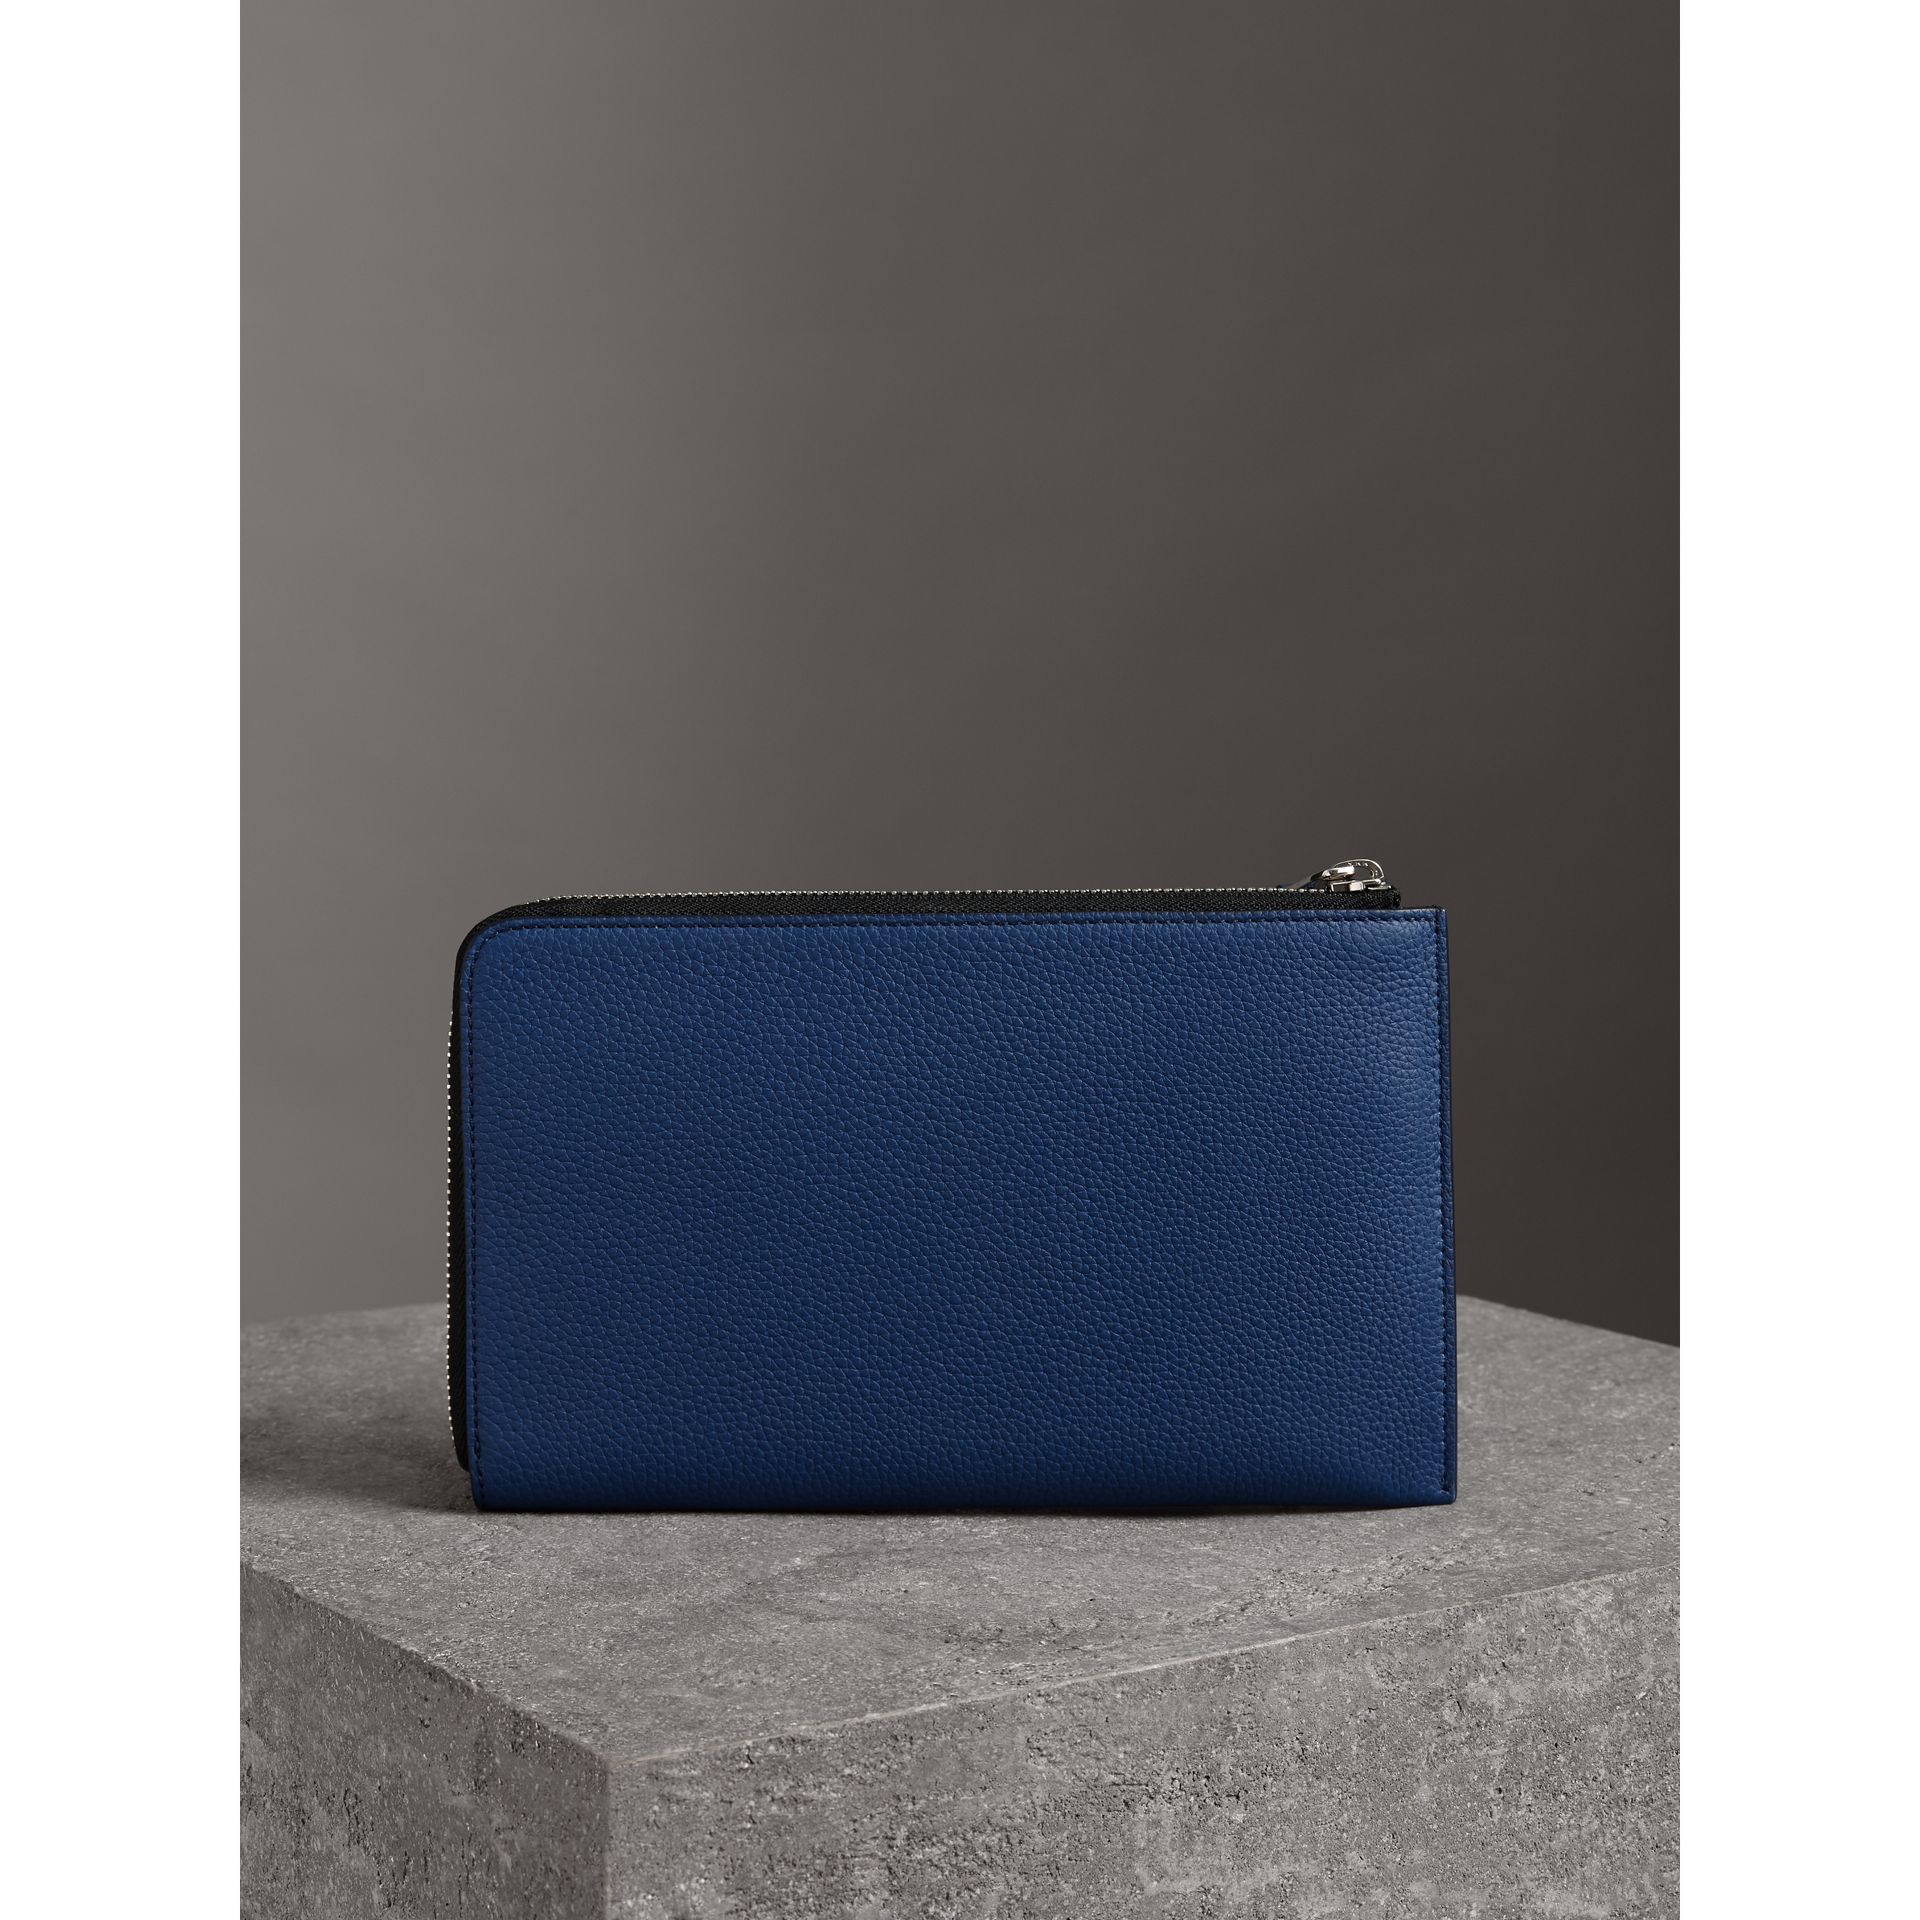 Two-tone Grainy Leather Travel Wallet in Bright Ultramarine - Men | Burberry - gallery image 2